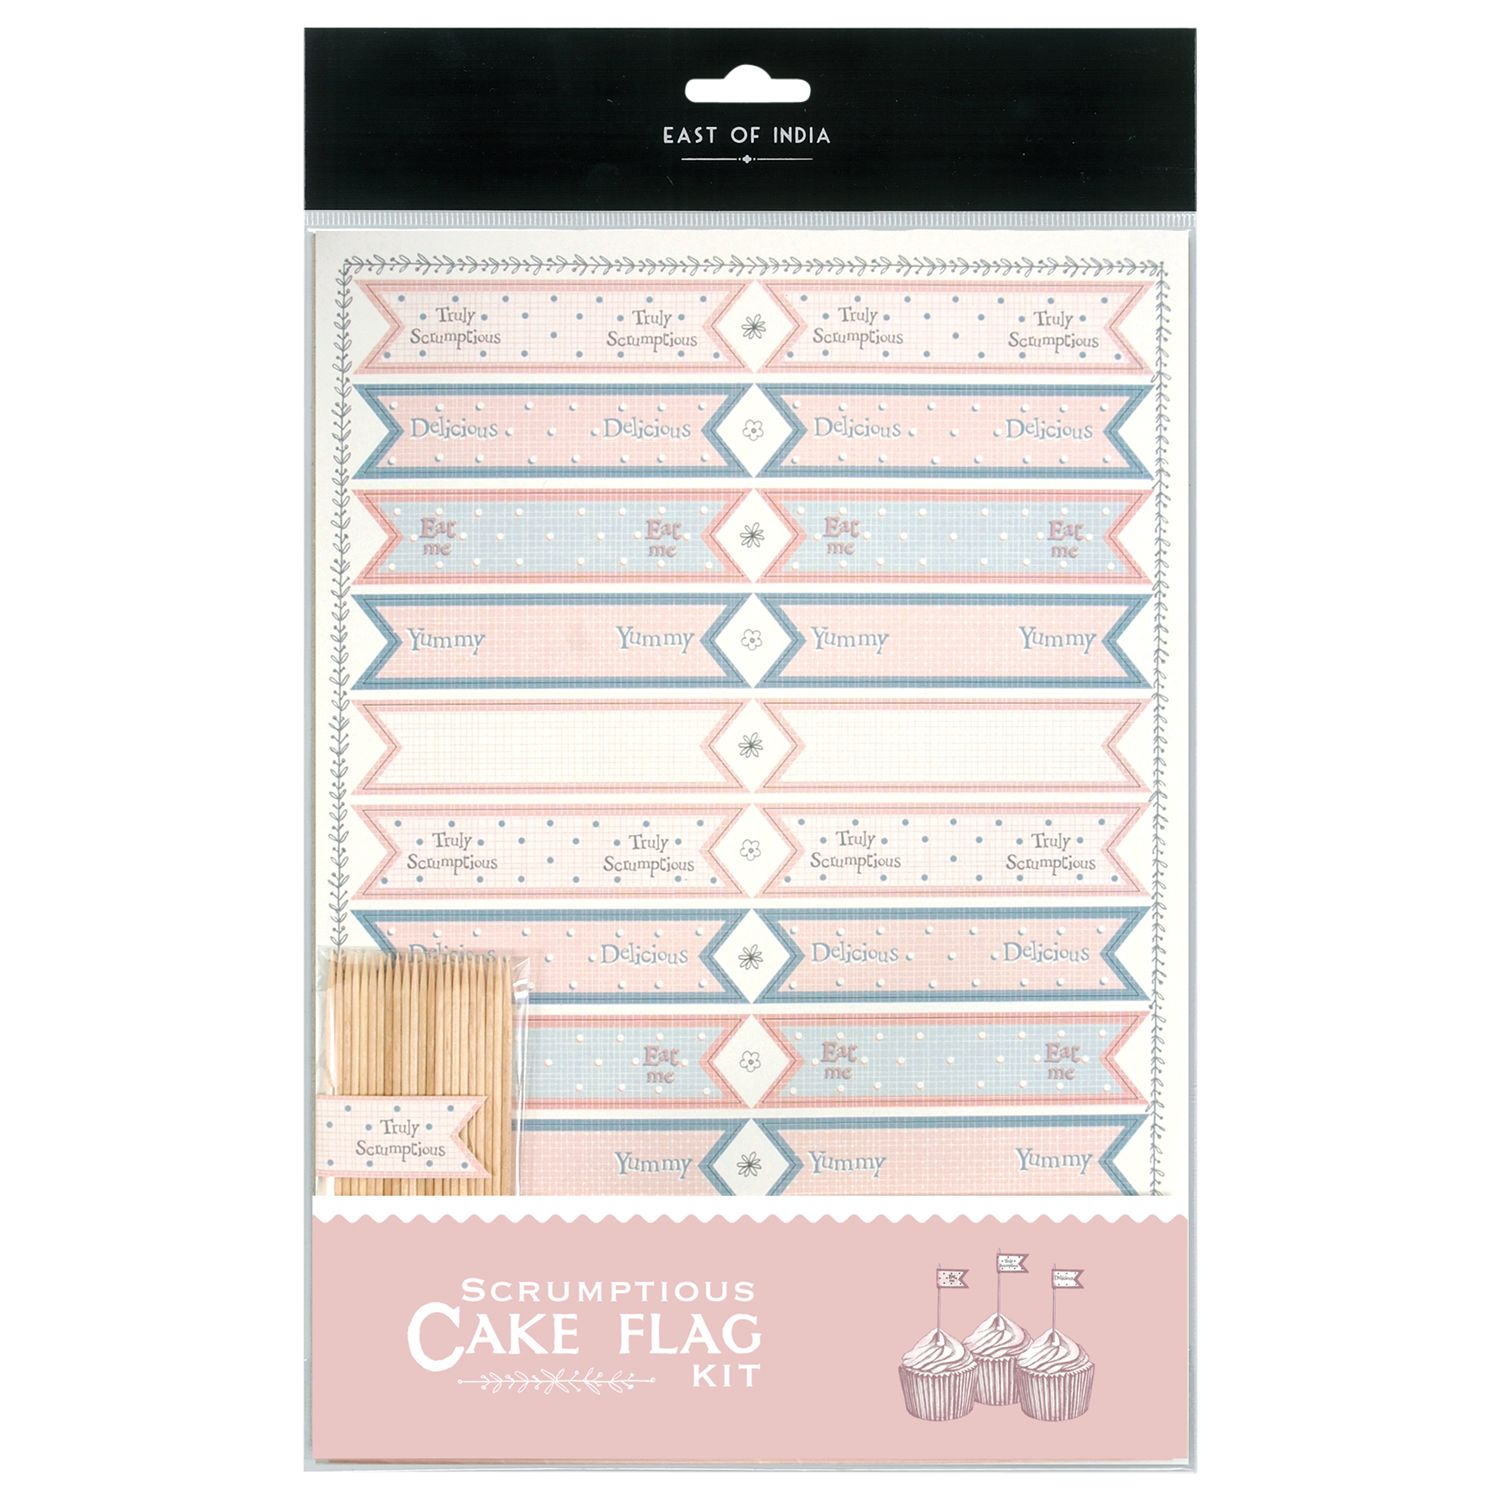 East of India East of India Cupcake Tiny Flag Kit, Pack of 22